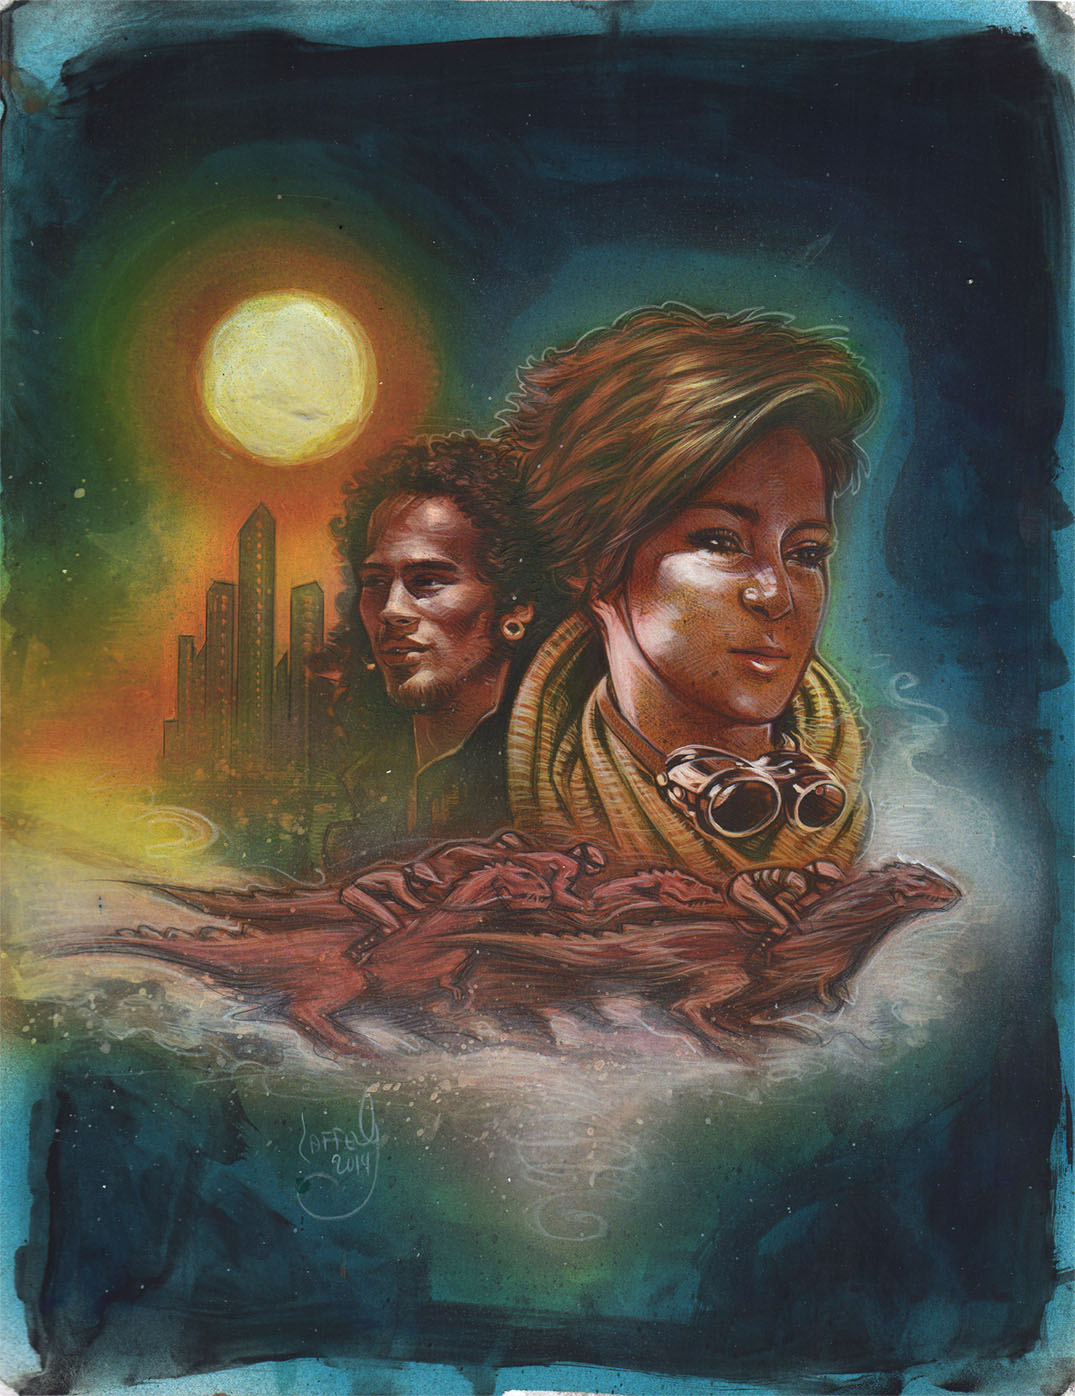 Book Cover Art Copyright ~ Jeff lafferty original art illustration